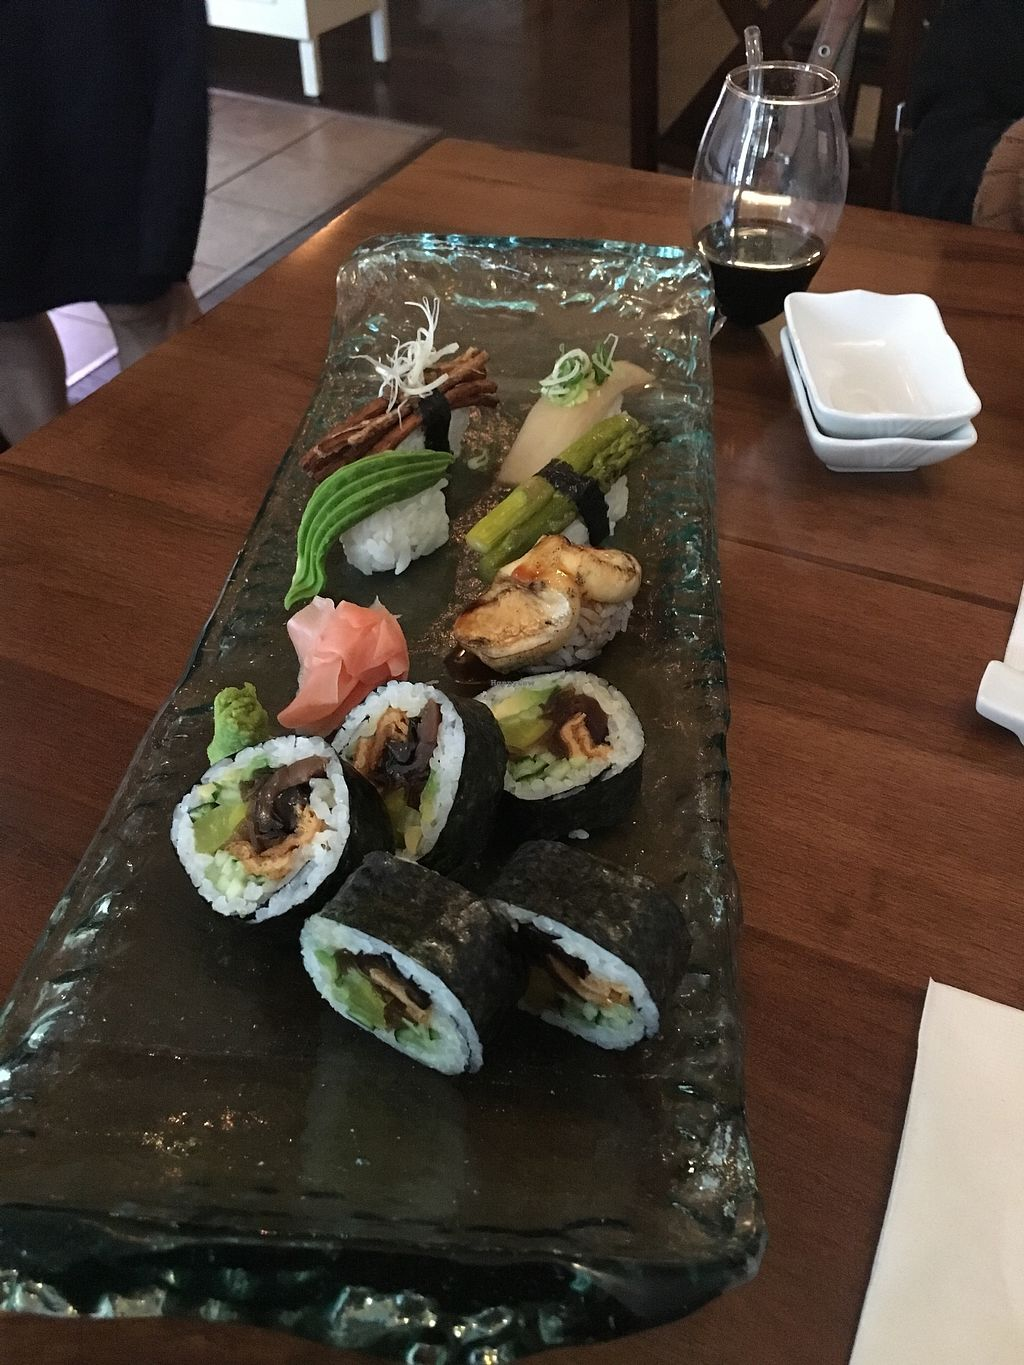 """Photo of Seasoned Fusion Tastes  by <a href=""""/members/profile/form"""">form</a> <br/>Vegan sushi platter <br/> August 16, 2017  - <a href='/contact/abuse/image/98715/293144'>Report</a>"""